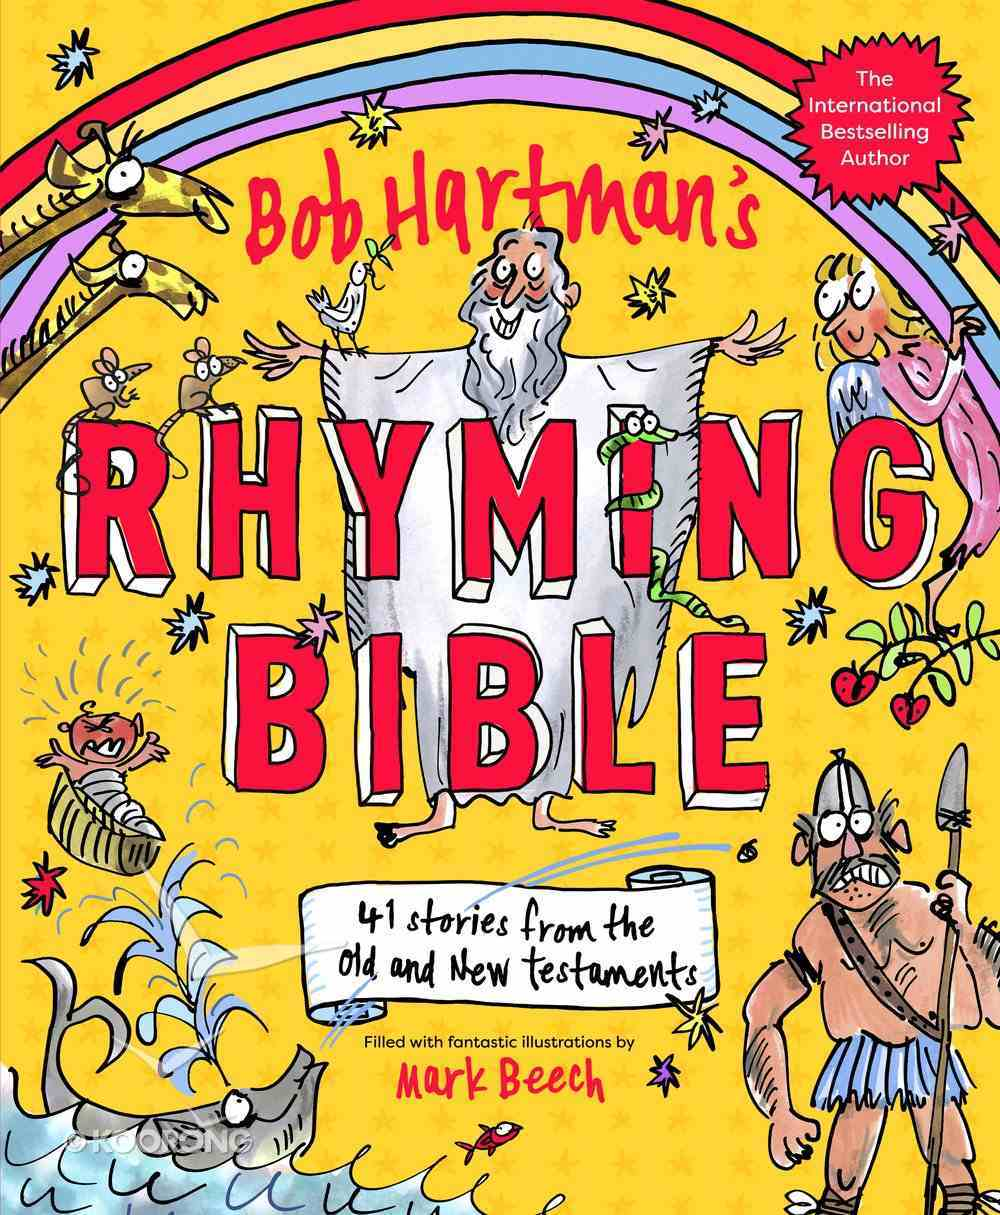 Bob Hartman's Rhyming Bible: 41 Stories From the Old and New Testaments Hardback